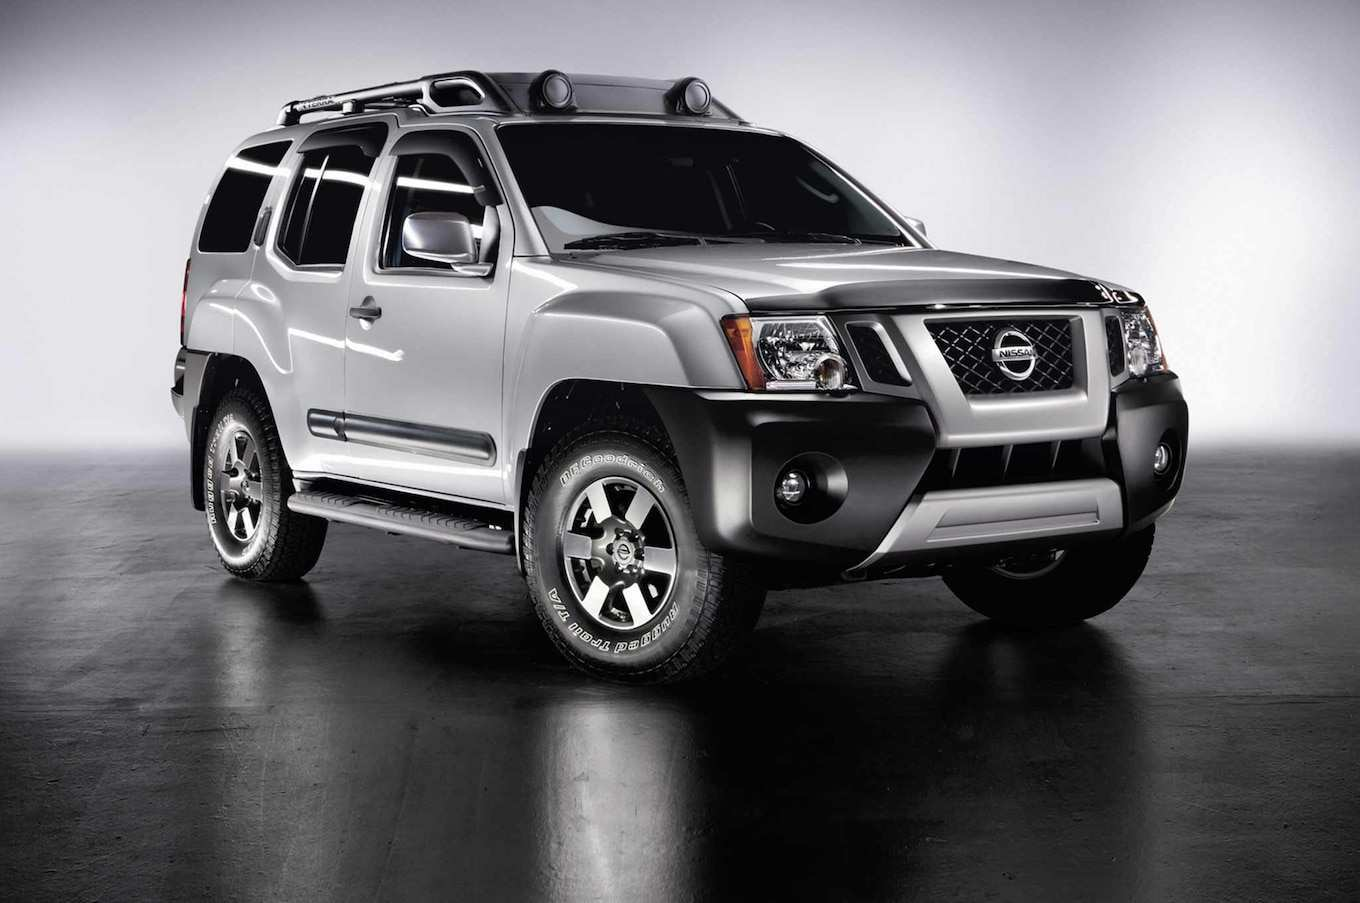 26 Concept of 2020 Nissan Xterra Spesification by 2020 Nissan Xterra